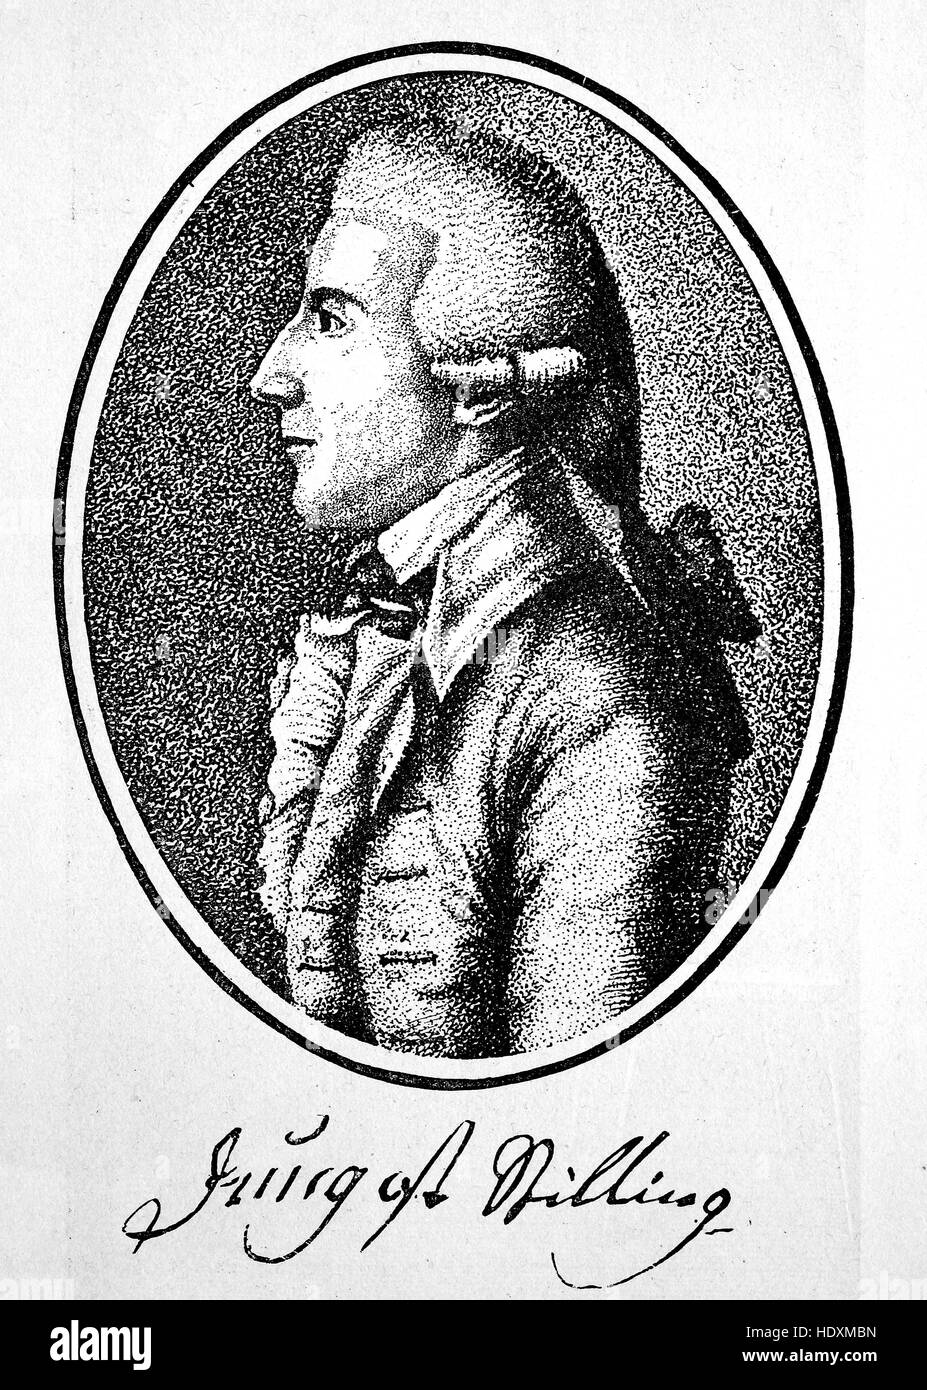 Johann Heinrich Jung or Heinrich Stilling, 1740-1817, a German author, woodcut from the year 1882, digital improved - Stock Image